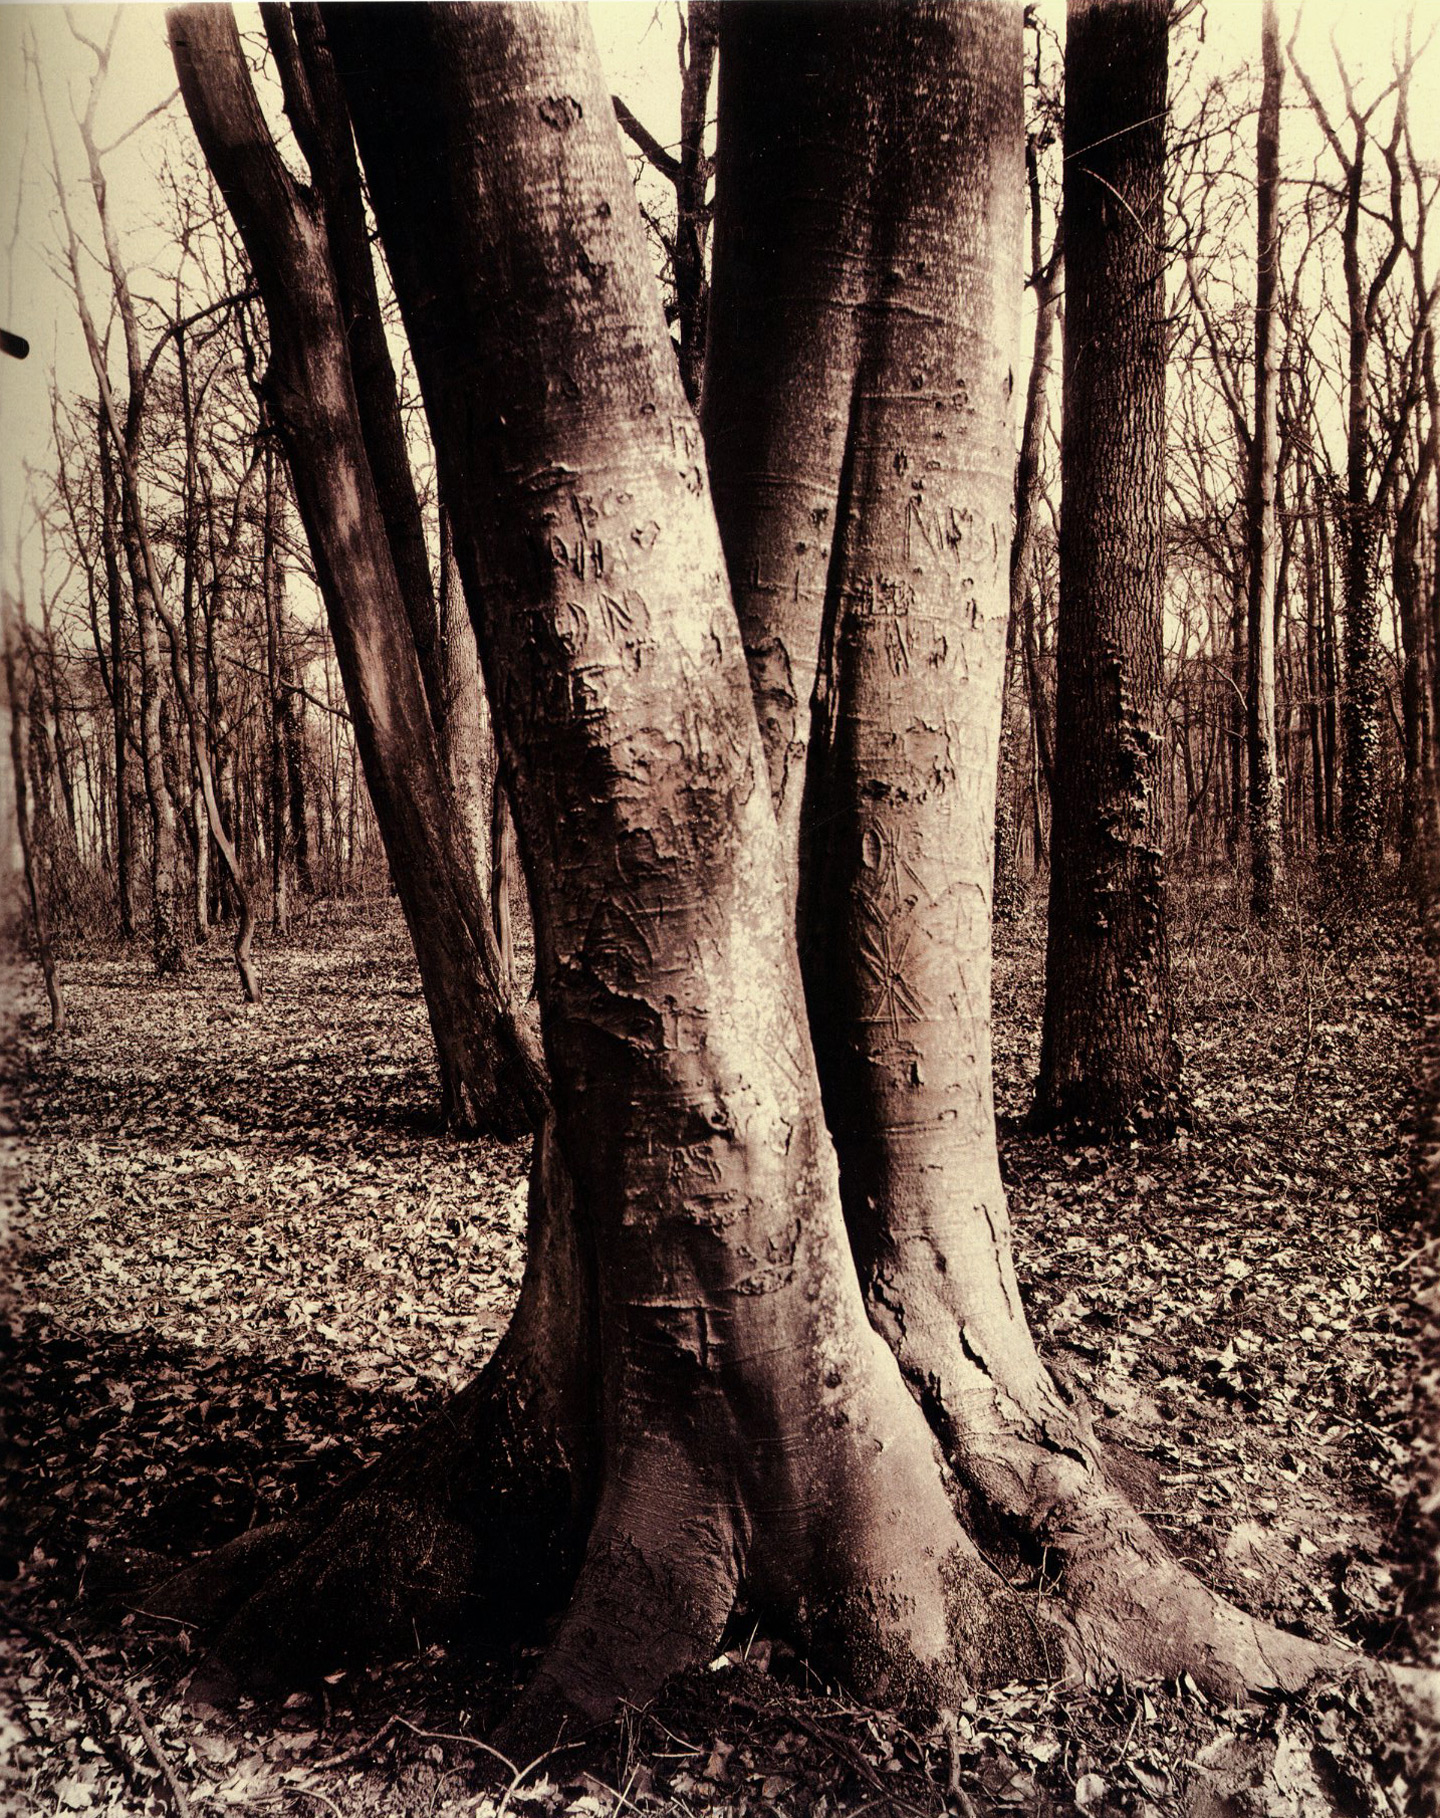 Eugène Atget's Trees: Newly Discovered Photographs from the Bibliothèque Nationale de France